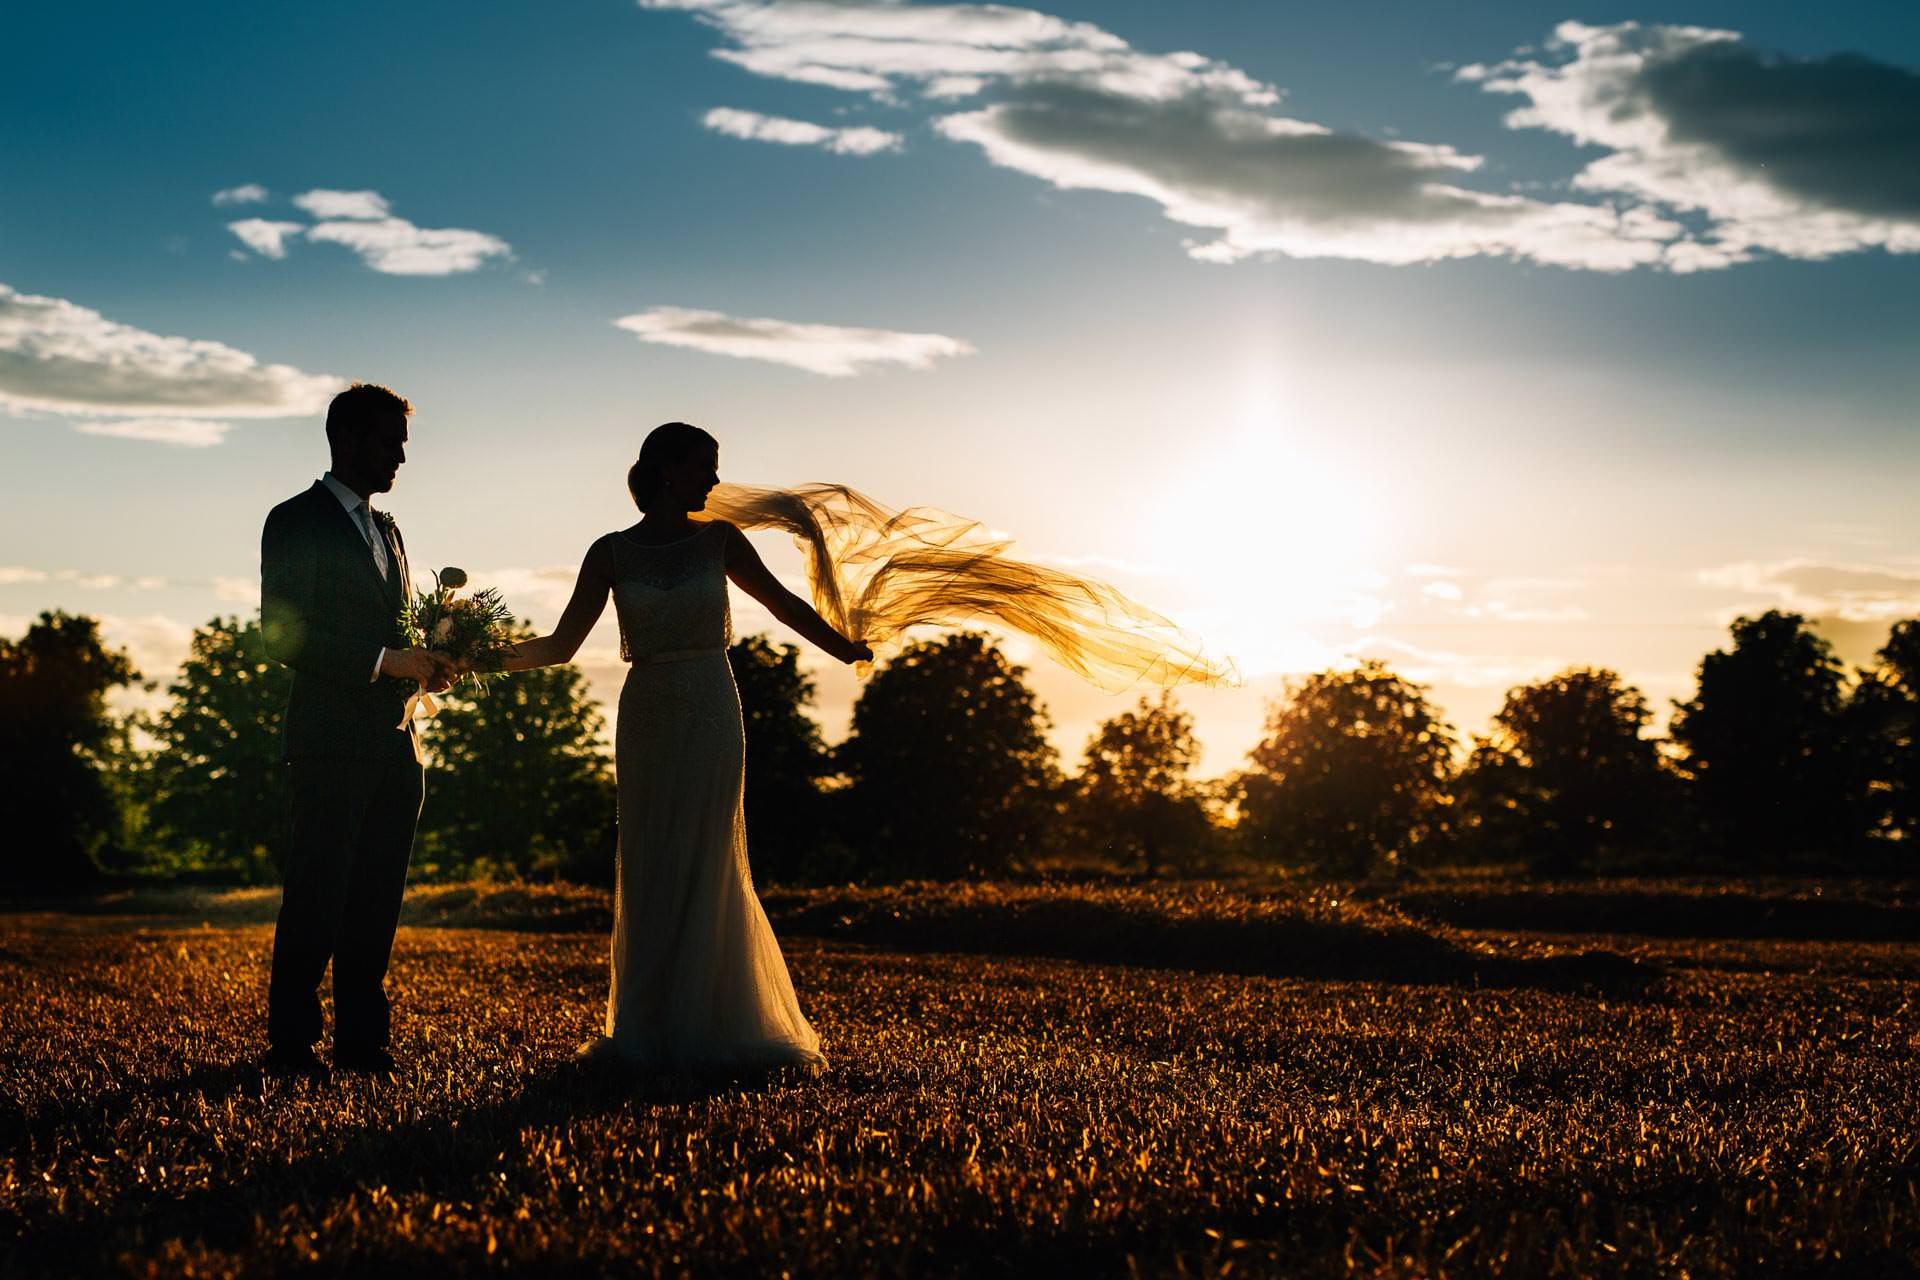 Best wedding photography 2016 - bride and groom walking through a field at sunset